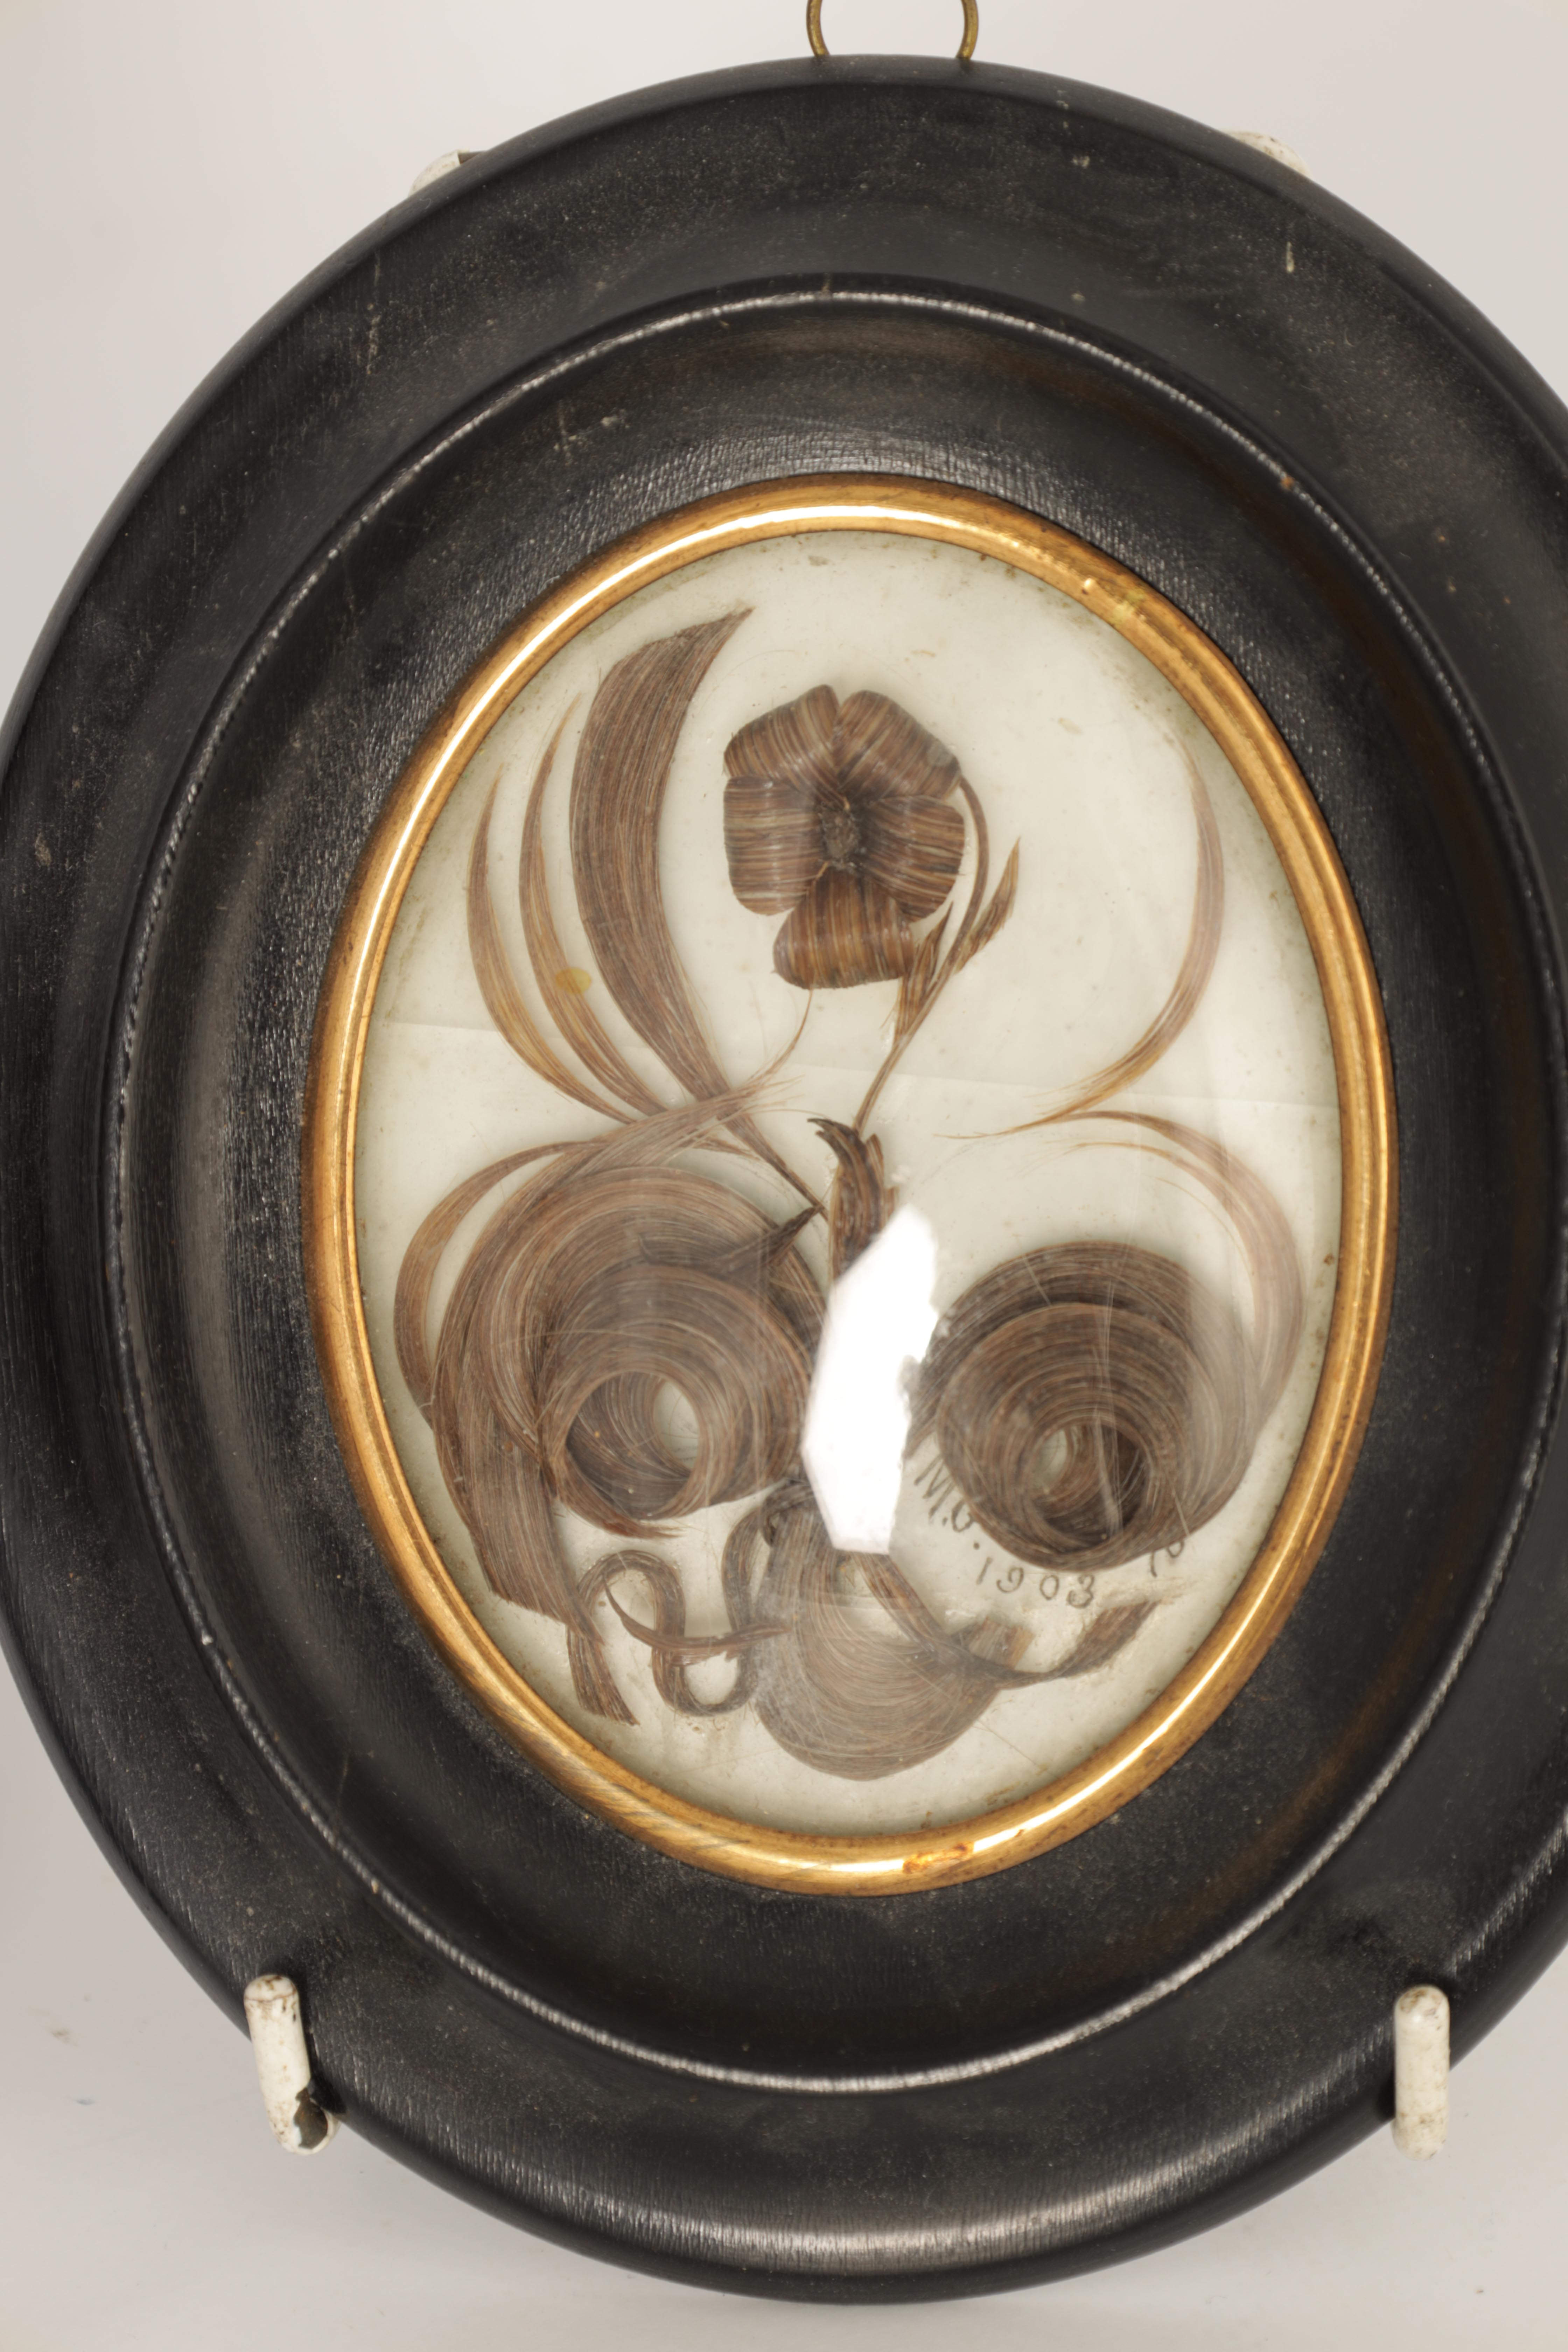 A LATE 19TH CENTURY WATERCOLOUR OVAL PORTRAIT OF A TERRIER 11cm high 8cm wide mounted in a lacquered - Image 4 of 14